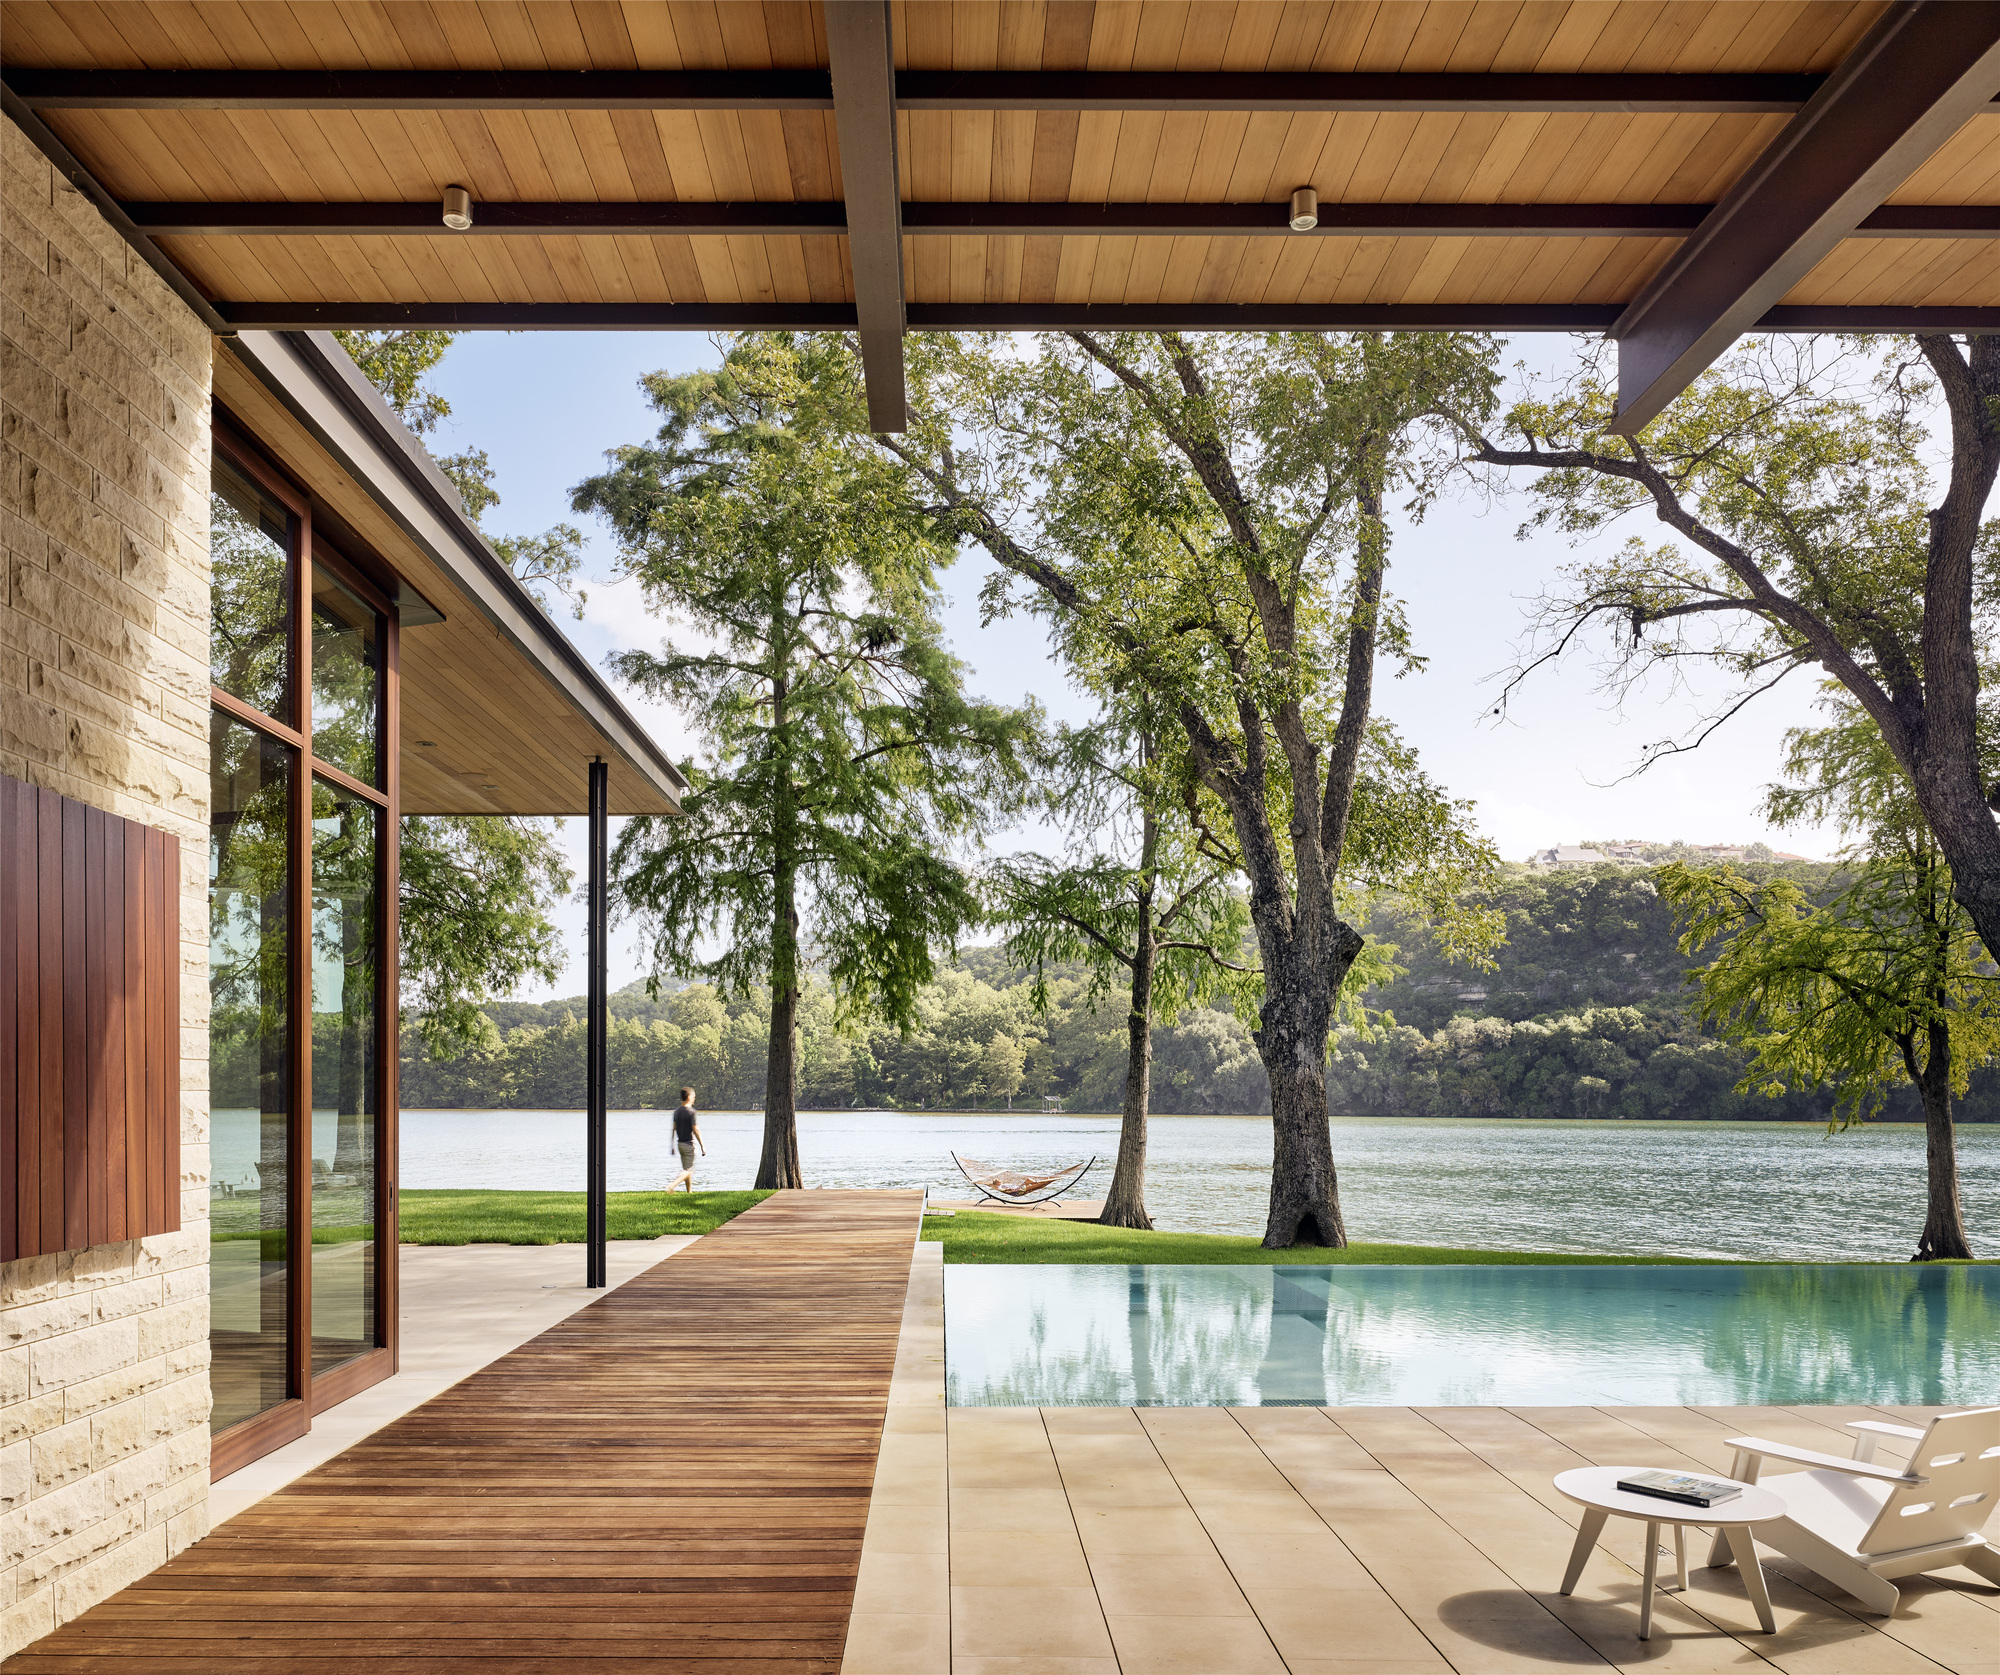 A Parallel Architecture gallery of lake austin residence / a parallel architecture - 7